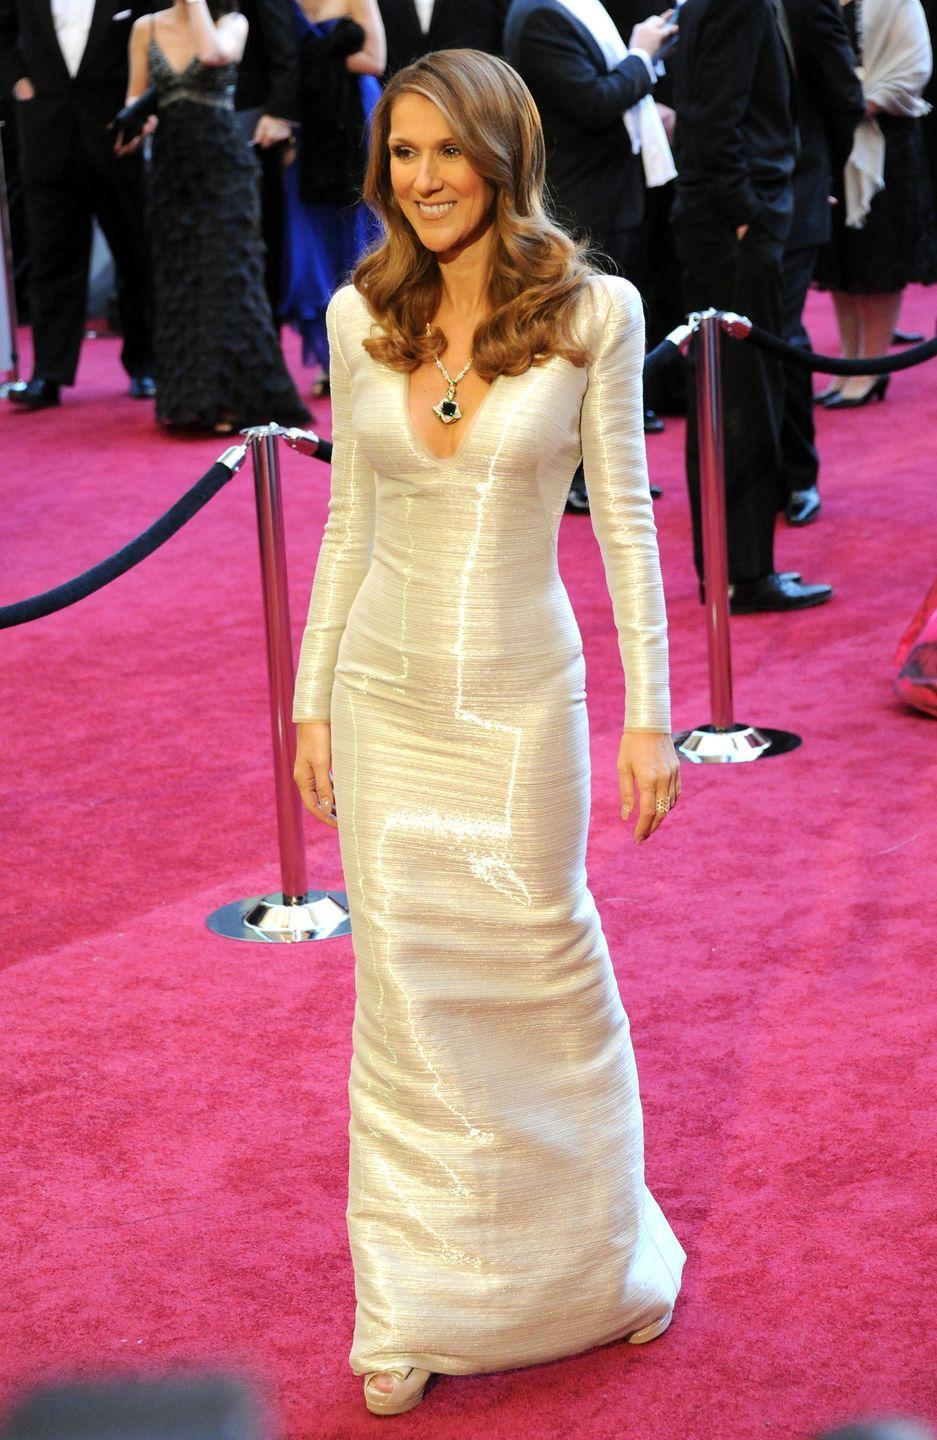 <p>Celine looked radiant on the Academy Awards red carpet in a form-fitting white gown. Her peep-toe heels match the dress impeccably, but the giant emerald around her neck stole the show.</p>